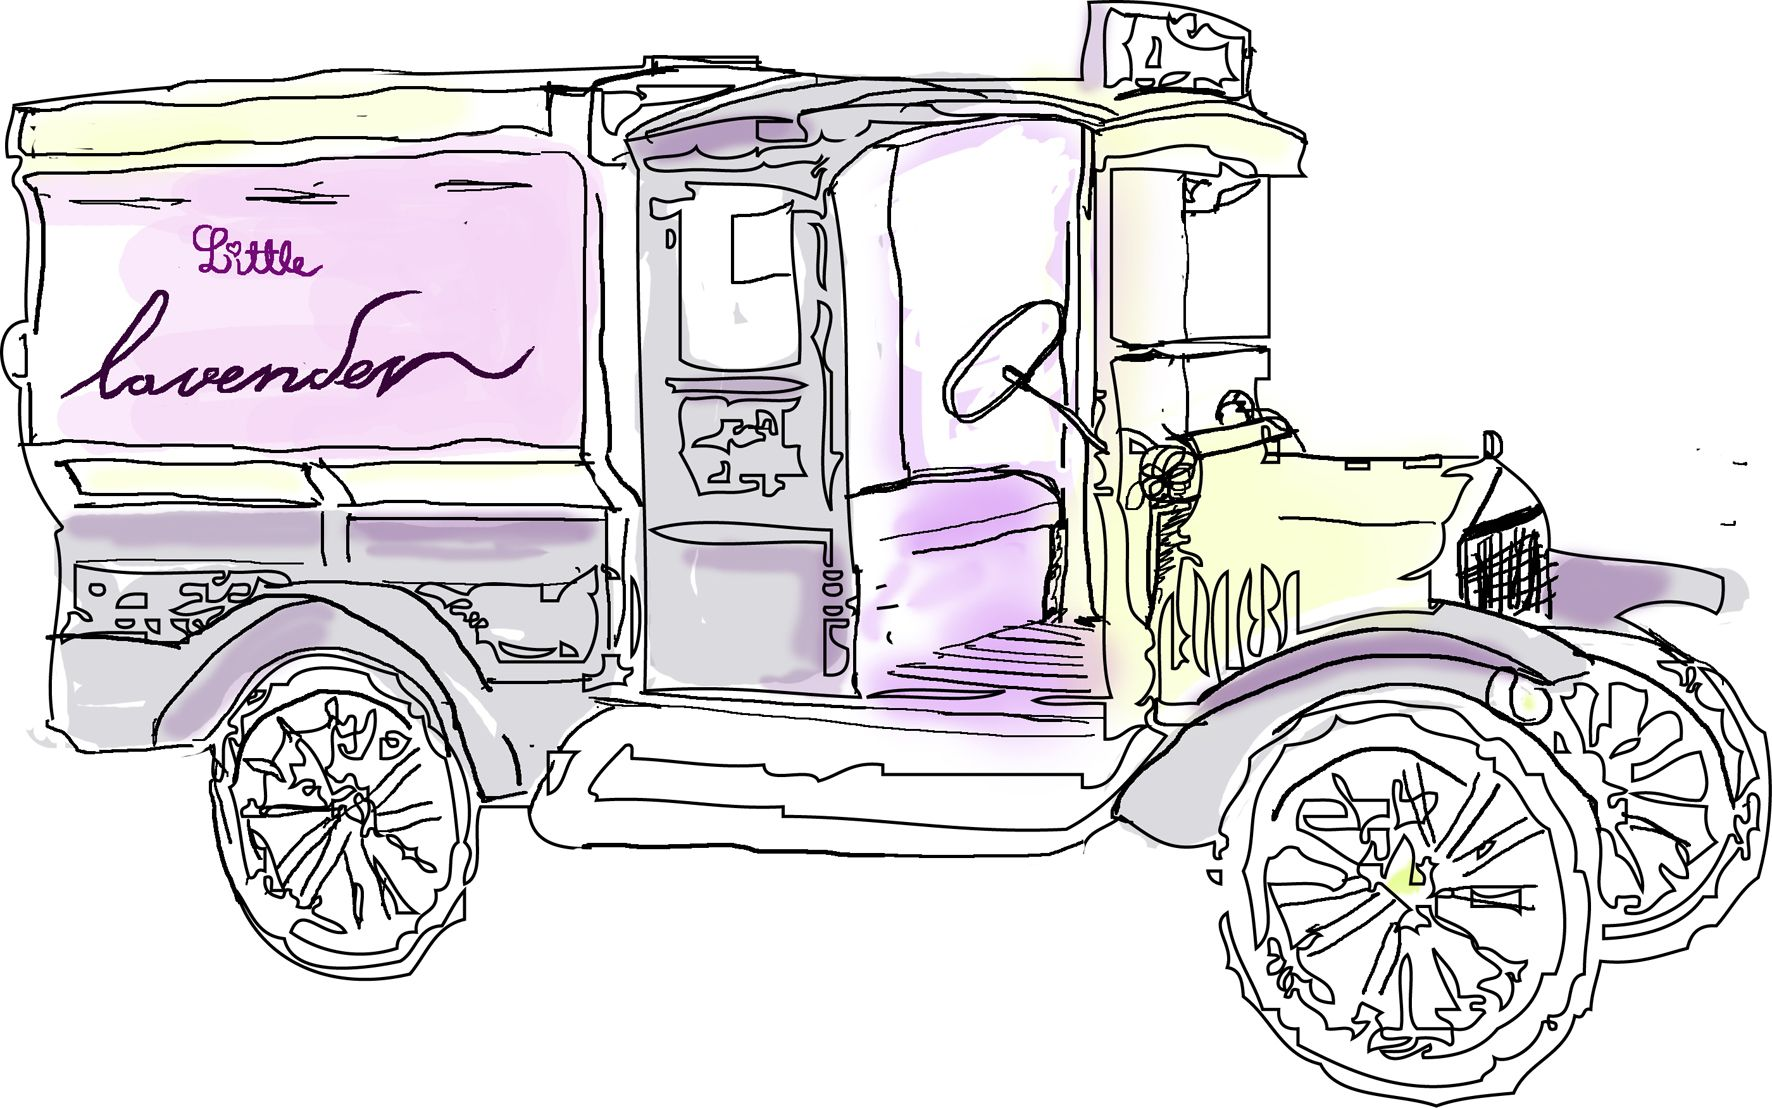 In my creative bubble I dream of having a little lavender car like this one! With a picnic in the back driving away from the hustle and bustle and into the warm summer meadows.